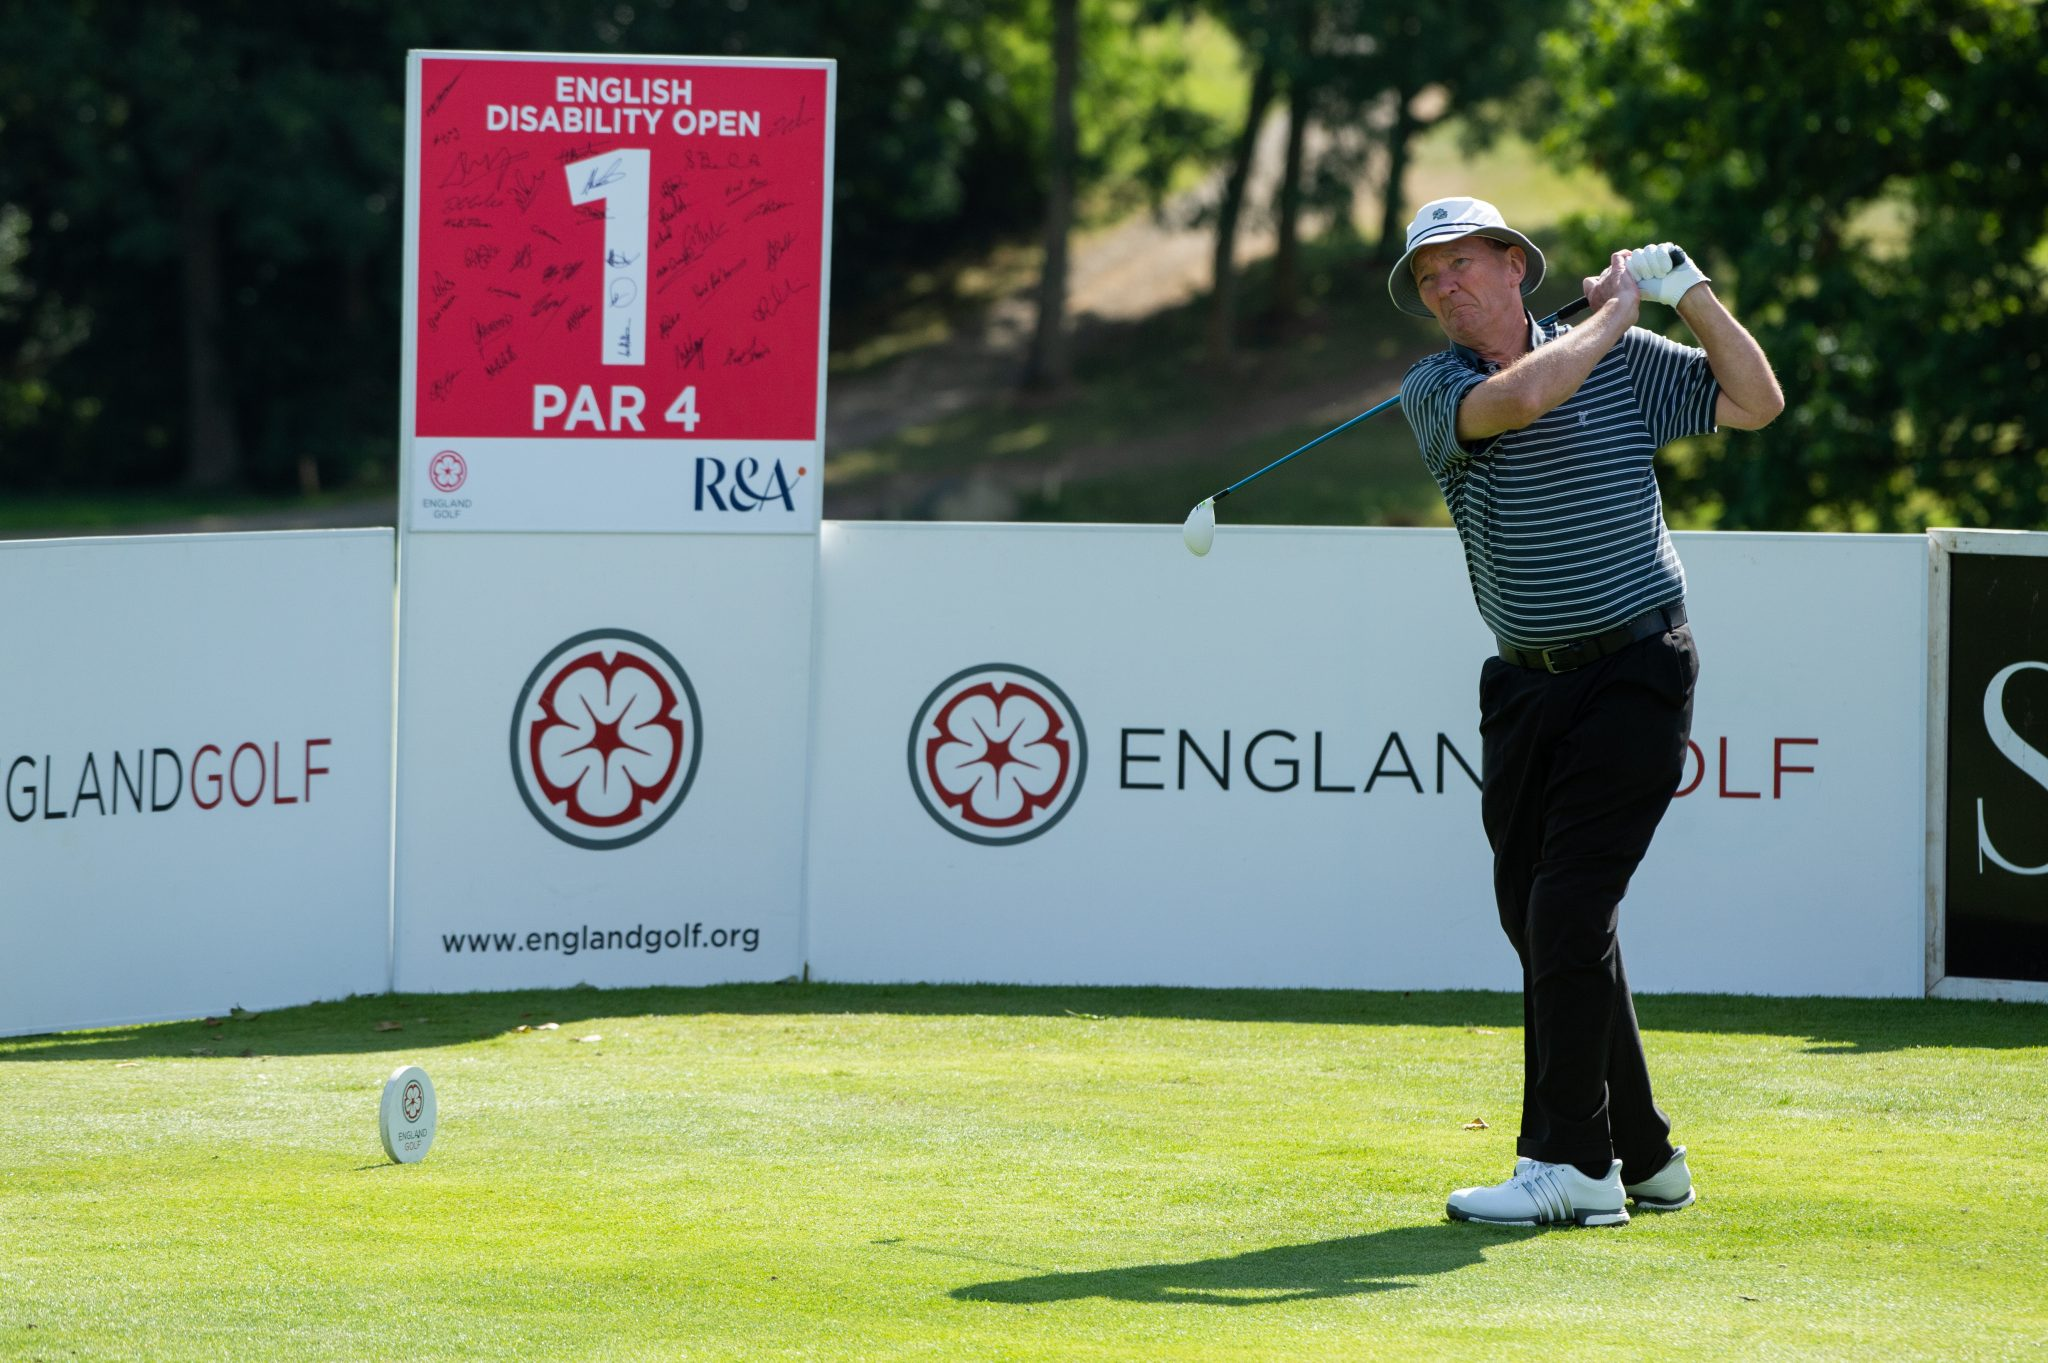 'Not all disabilities are visible' – England Golf supports day of awareness